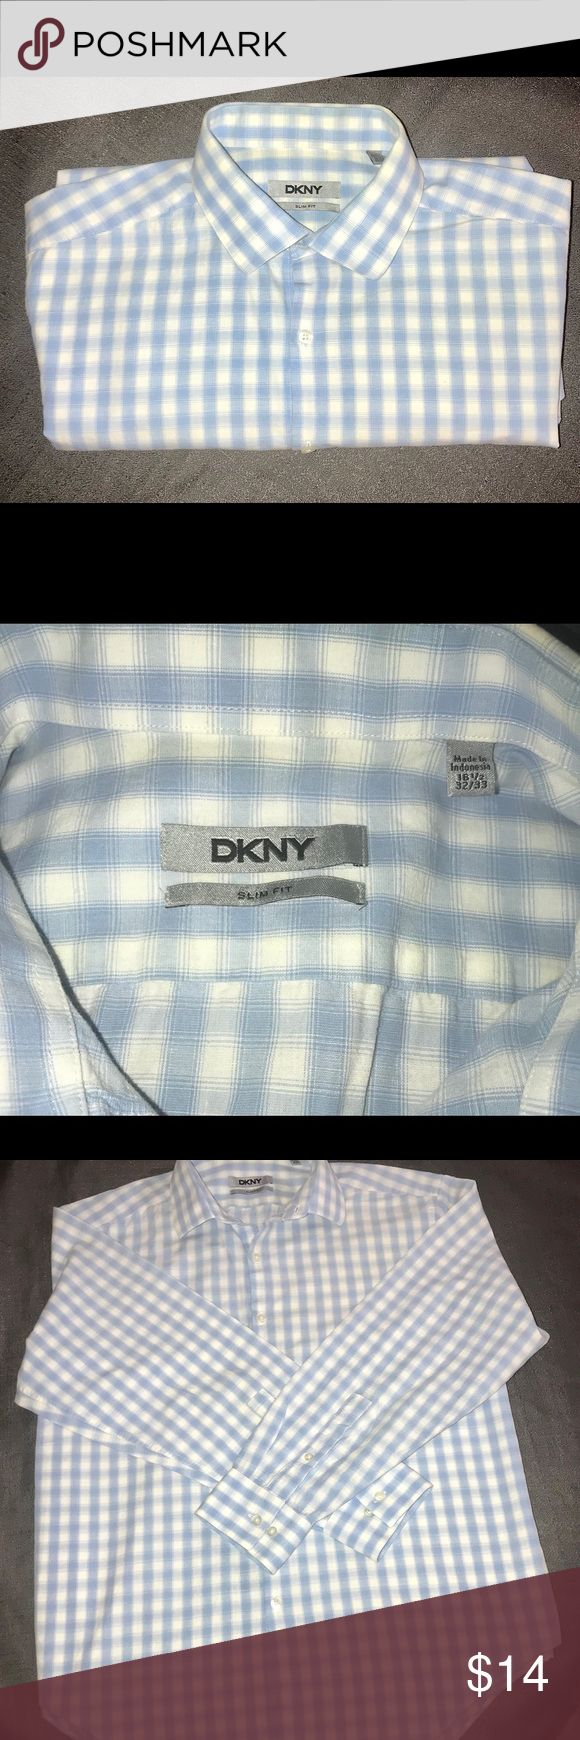 DKNY Mens Long Sleeve Button Down Shirt Blue and White plaid shirt in excellent condition Dkny Shirts Casual Button Down Shirts